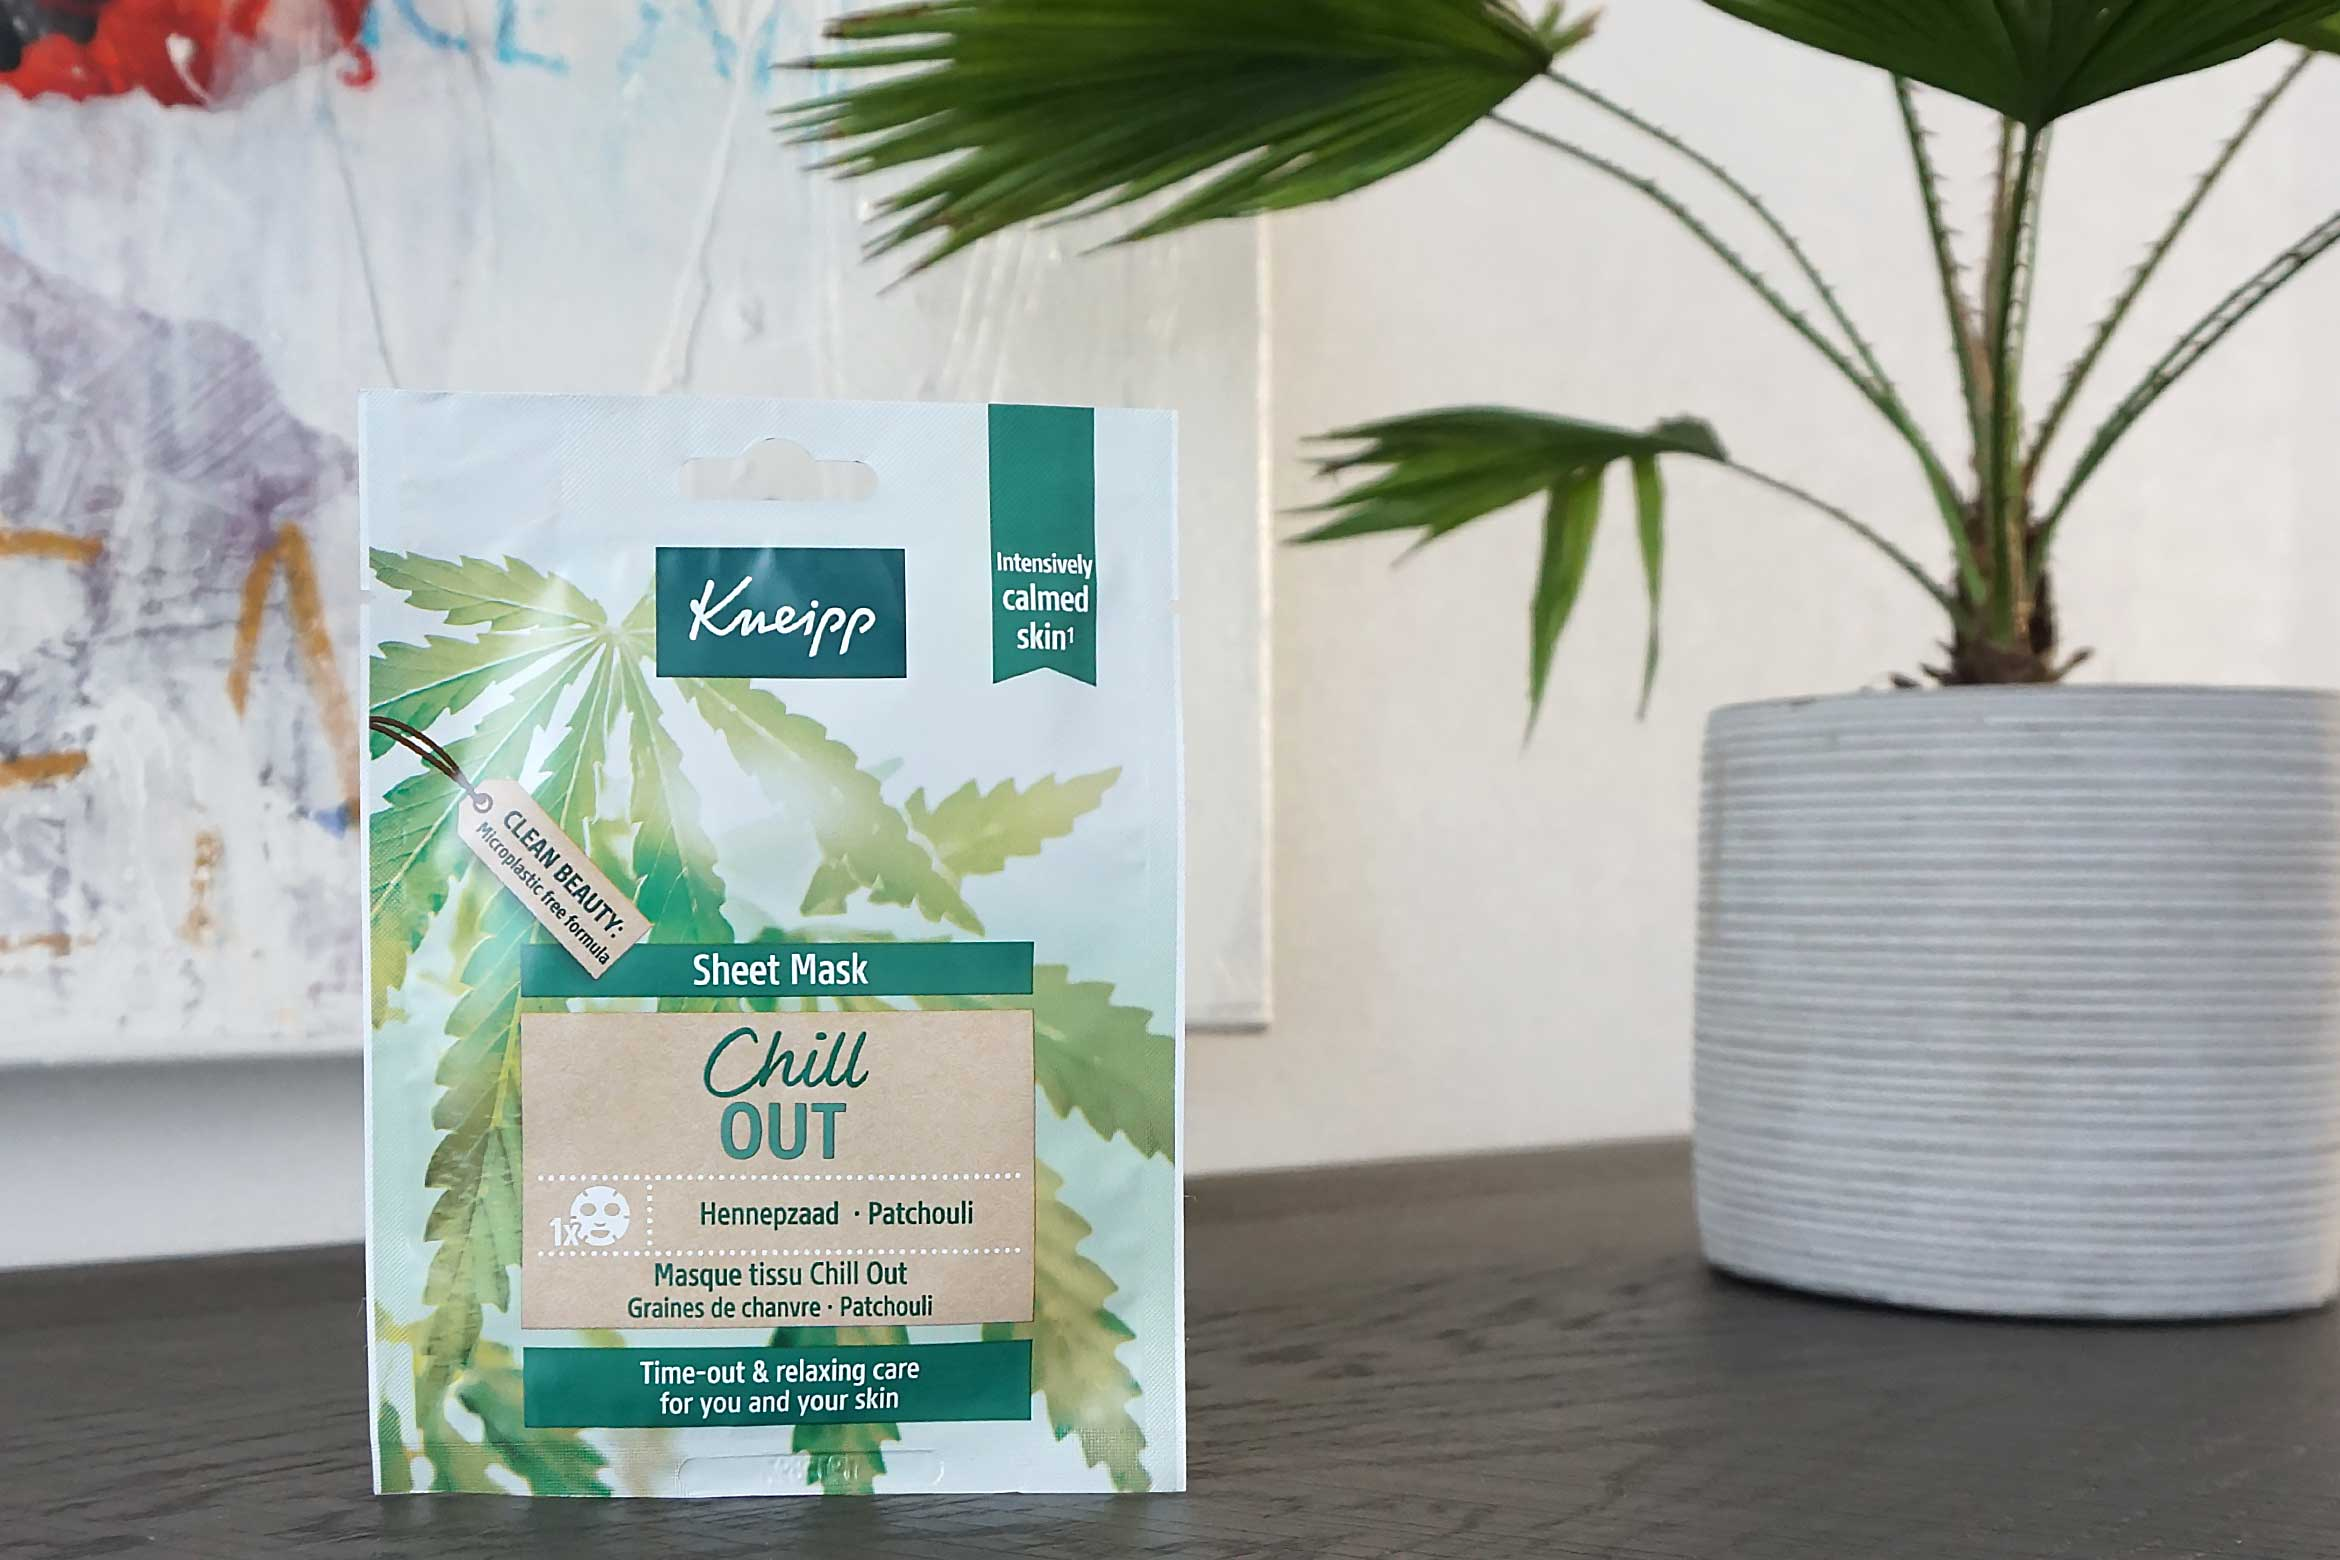 kneipp sheet mask chill out review